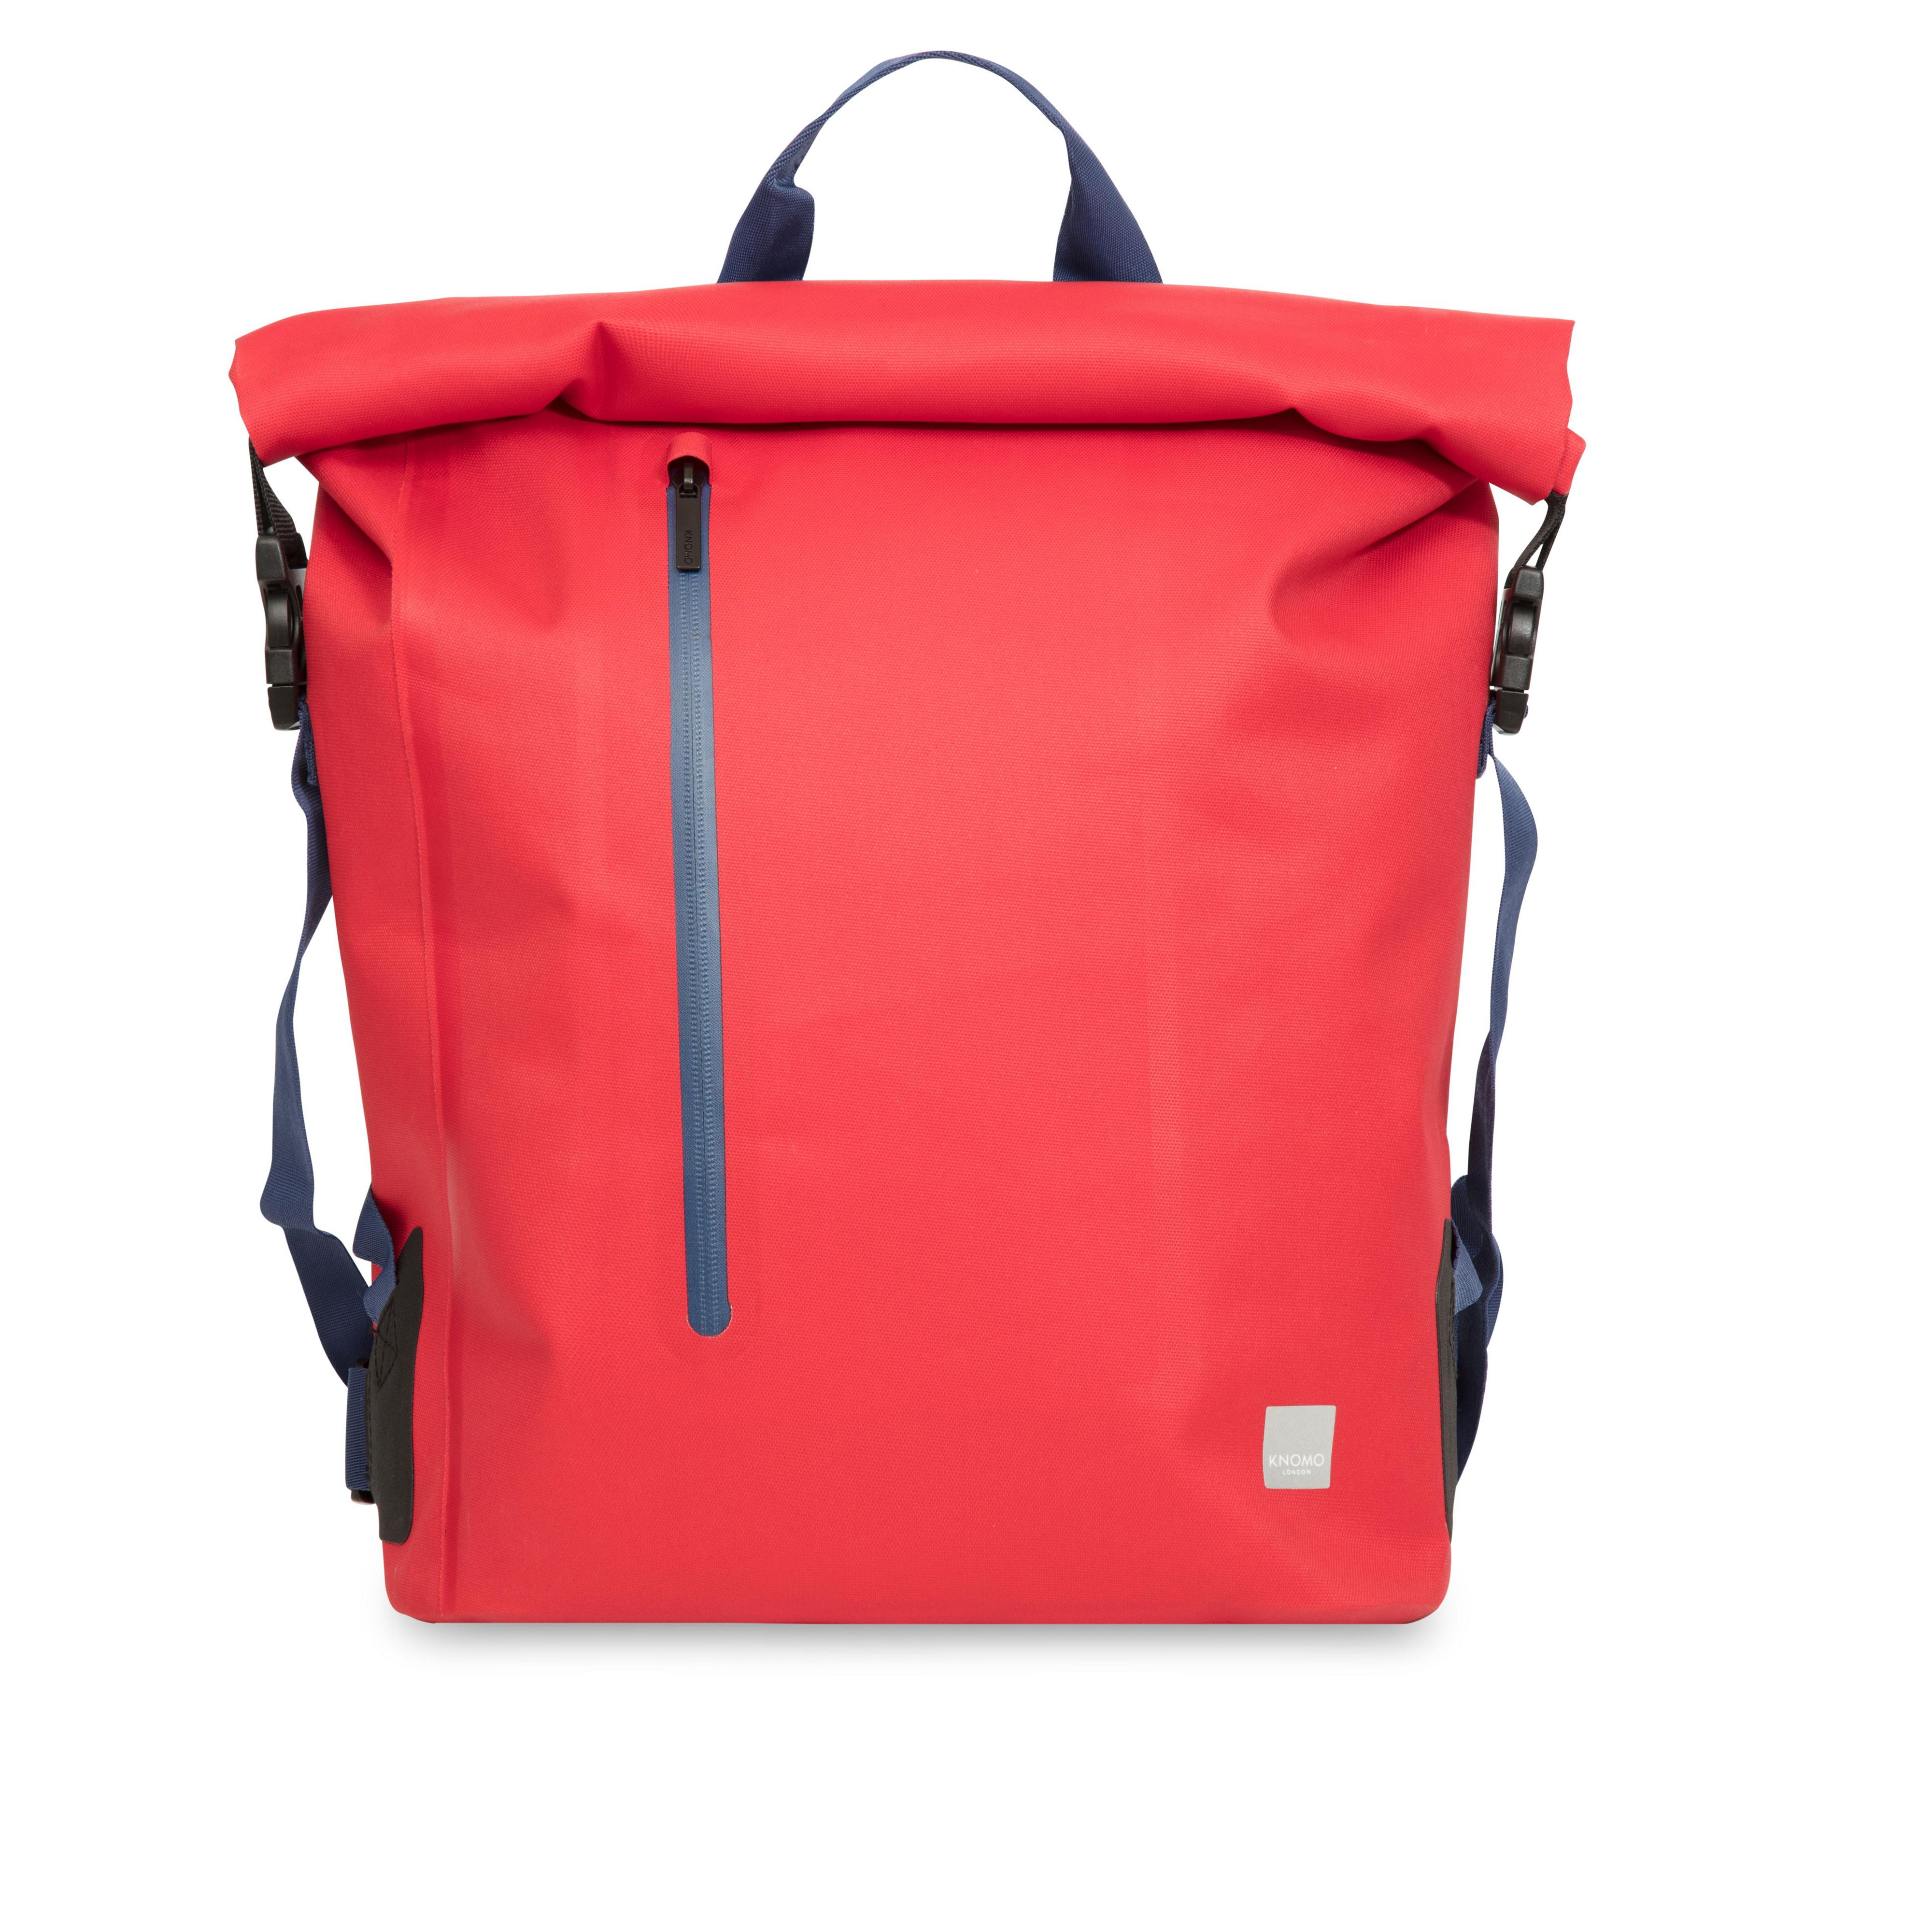 Knomo Cromwell 15 Top Zip Backpack Bag, Red